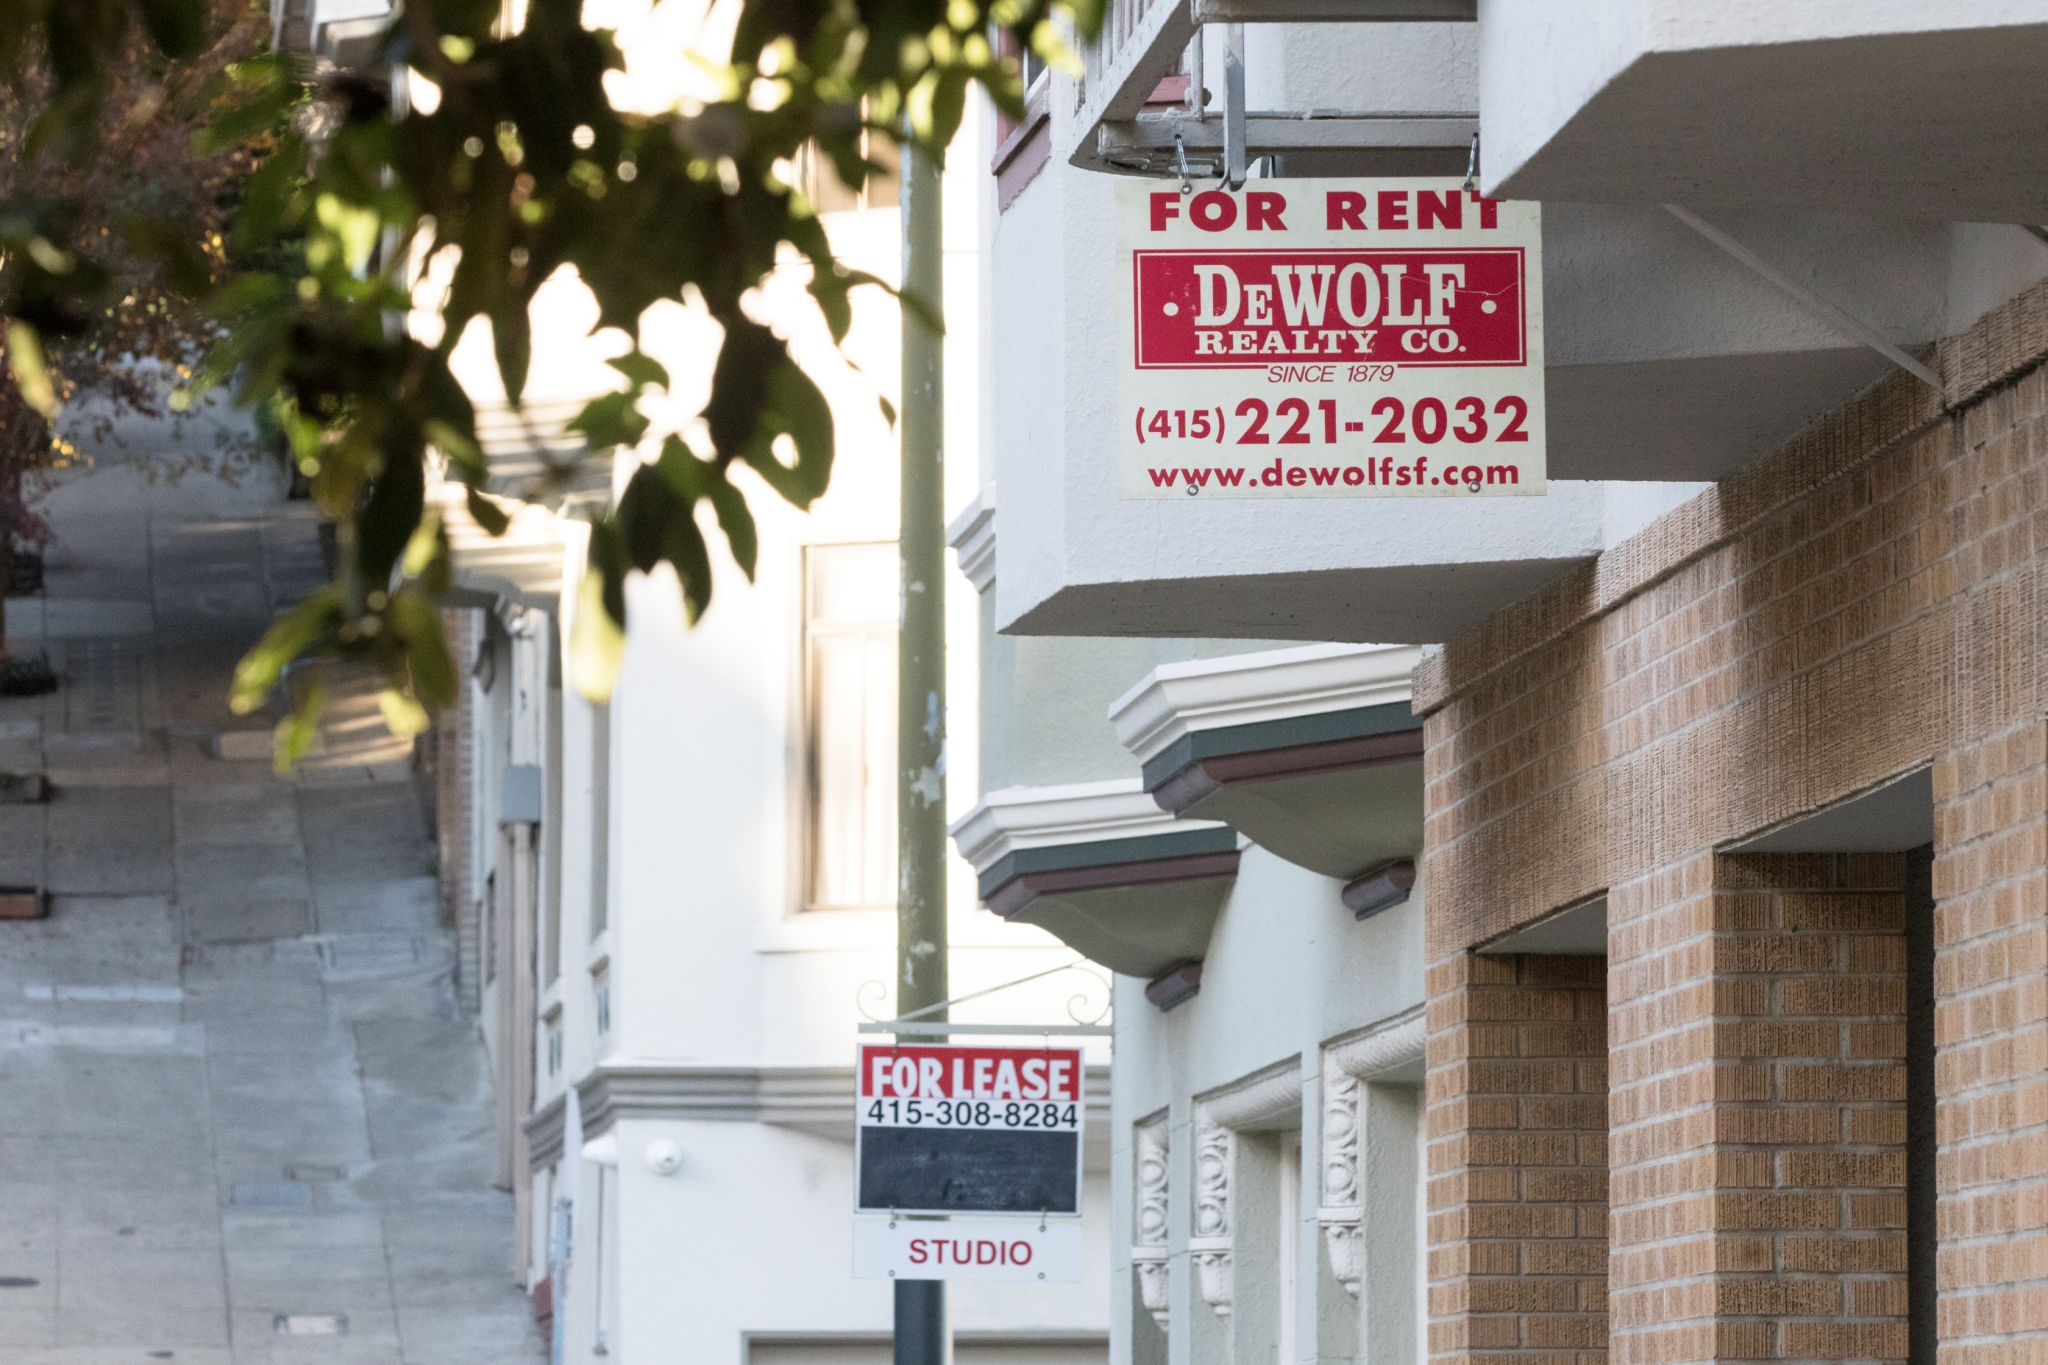 San Francisco rent prices stabilizing, no change since January